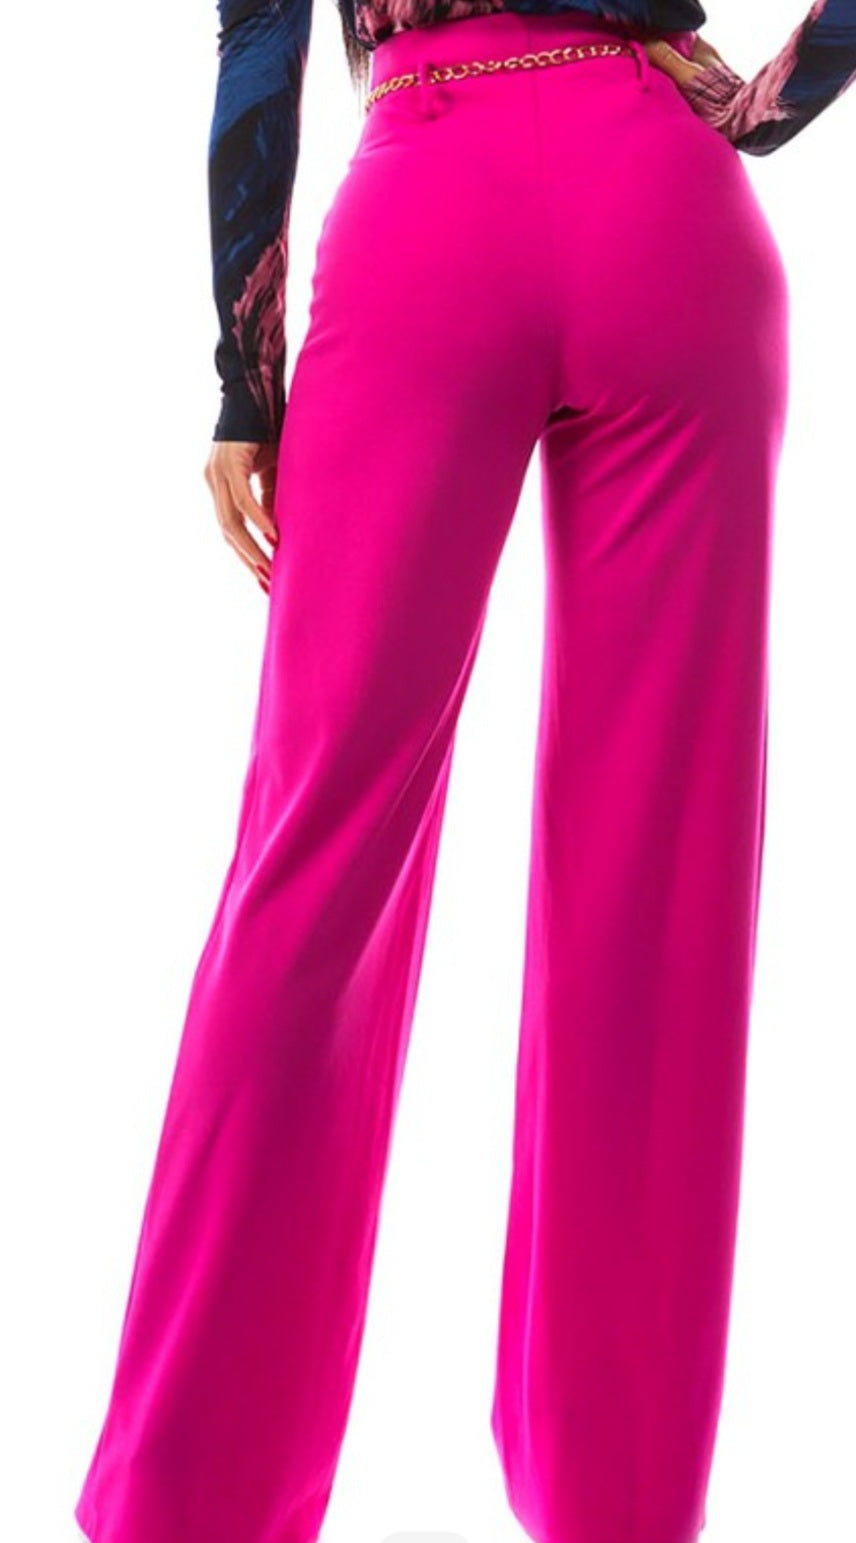 The Office Wide Leg Pants